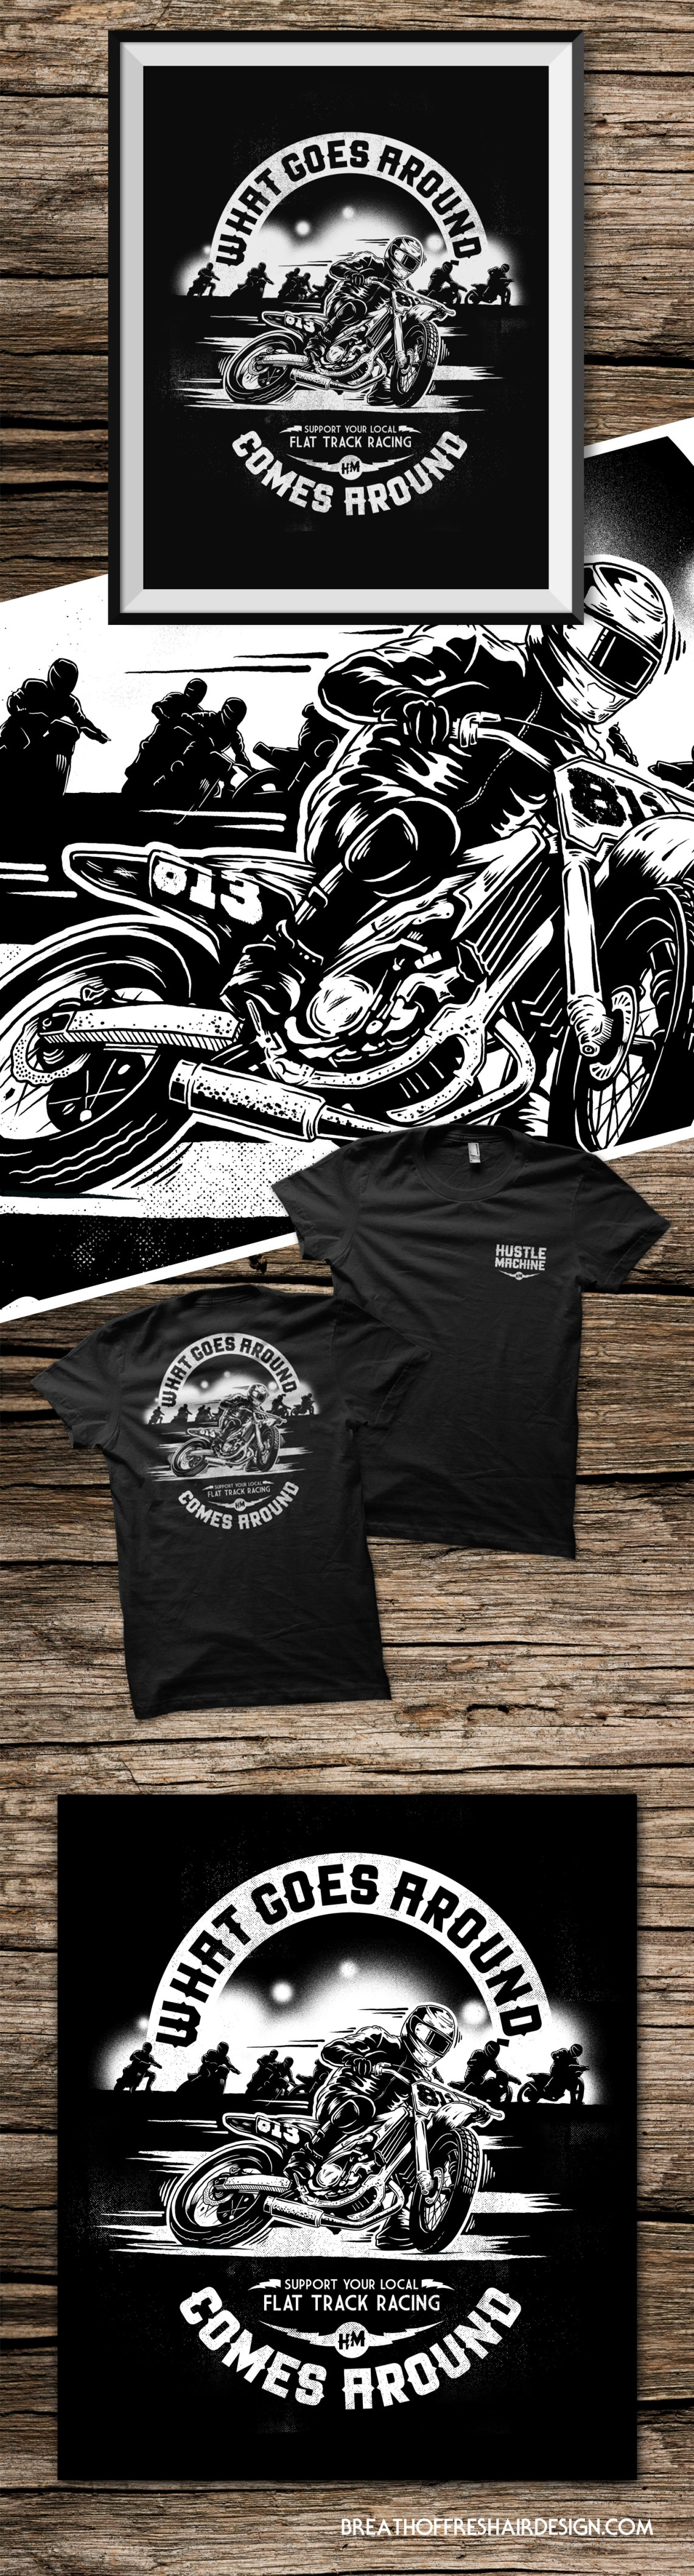 Hustle Machine, Clothing, Brand, Flat Track, Motorcycles, Choppers, Forever Two Wheels, Tshirt Design, Illustration, Clothing, Chopper, Open Road, Alone At Last